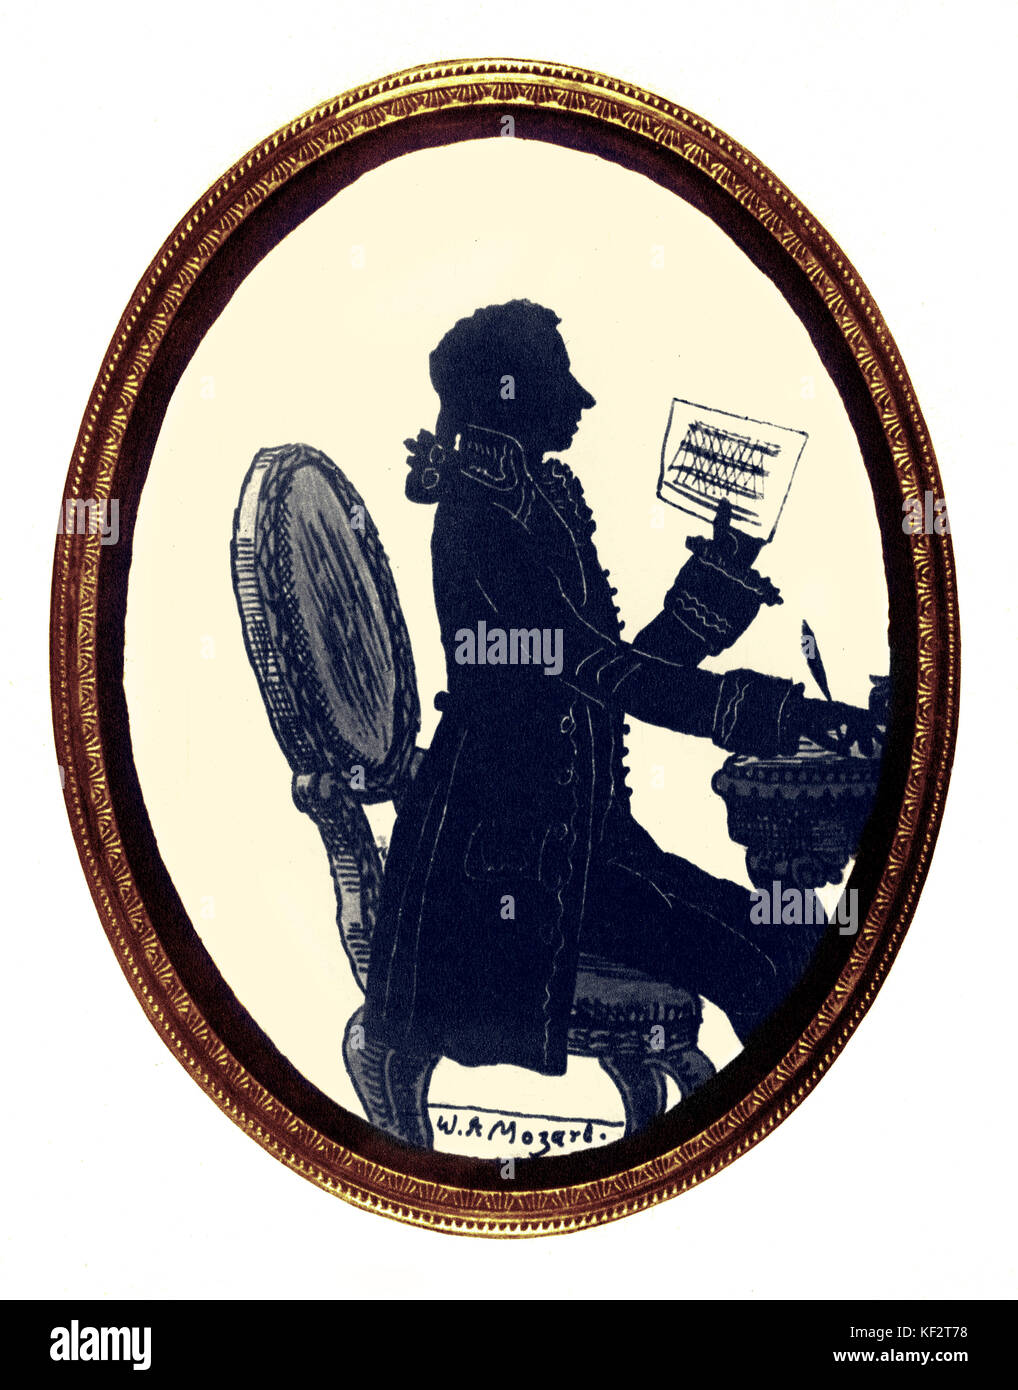 Mozart completing Don Giovanni . From shadow image made to commemorate the premiere of Don Giovanni opera (1787), - Stock Image